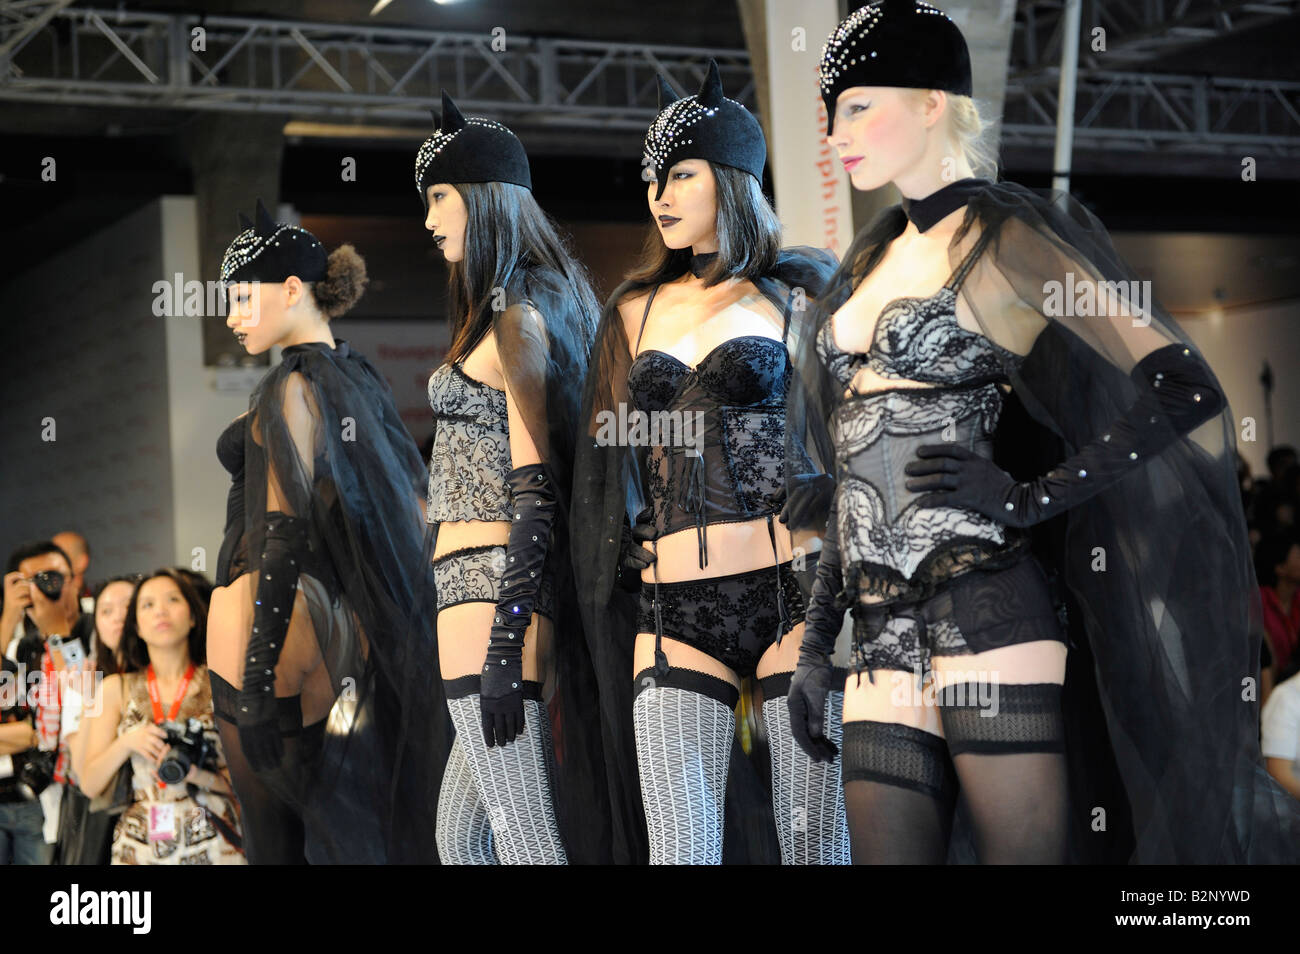 Triumph new lingeries released in 798 art zone, Beijing, China. 31-Jul-2008 - Stock Image